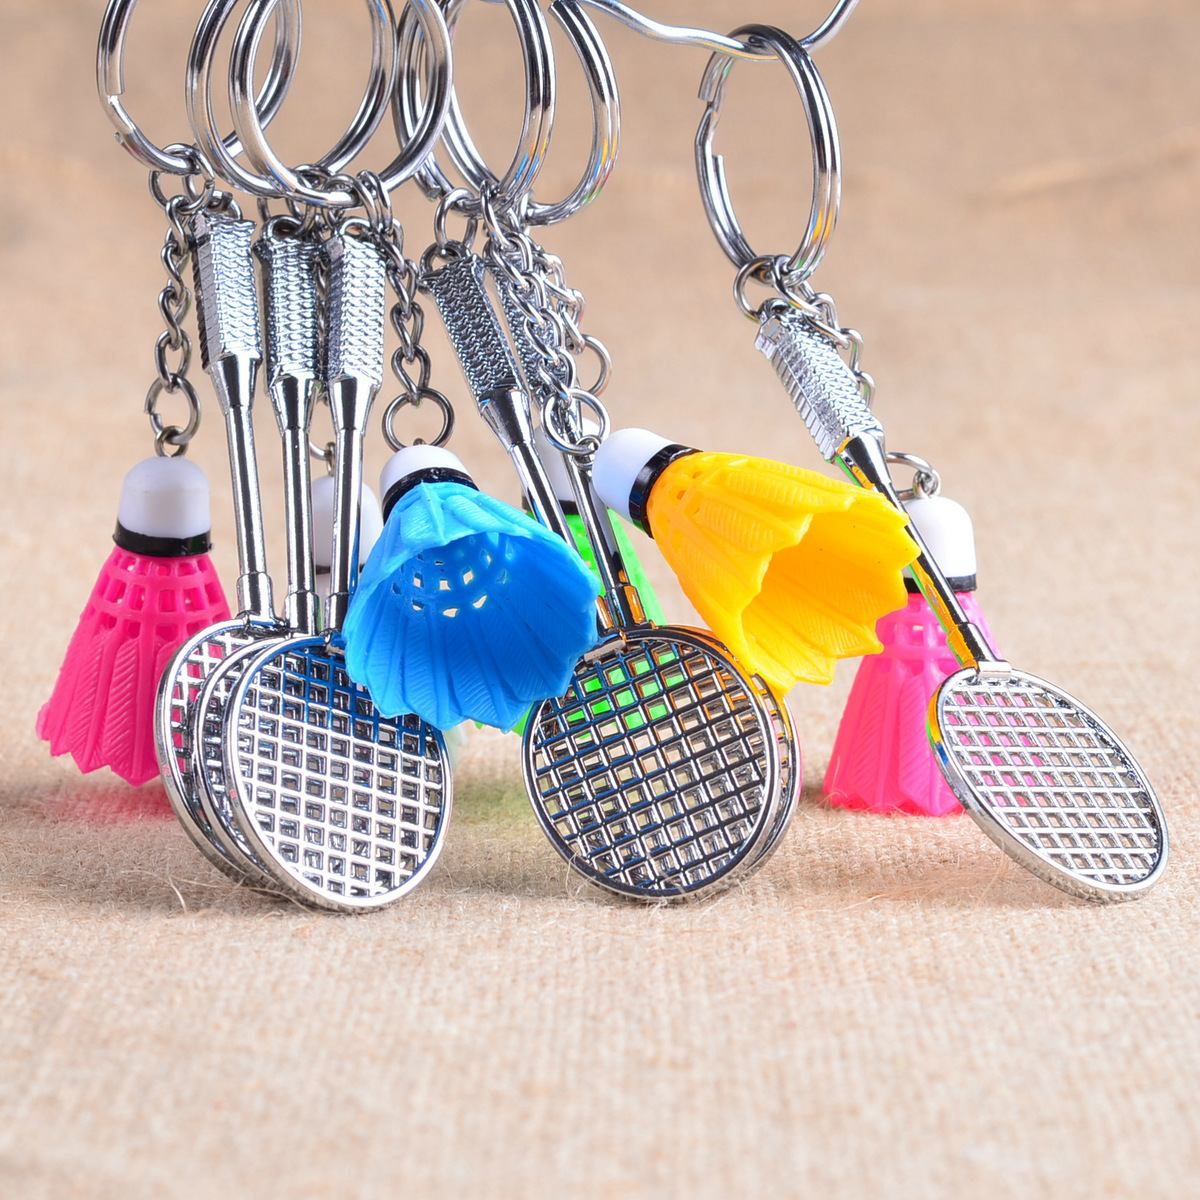 1 Pc ZARSIA Mini Metal Badminton Racket Key Ring Souvenir Cute Badminton Racquet Shuttlecock Key-chain Sports Chain Gift